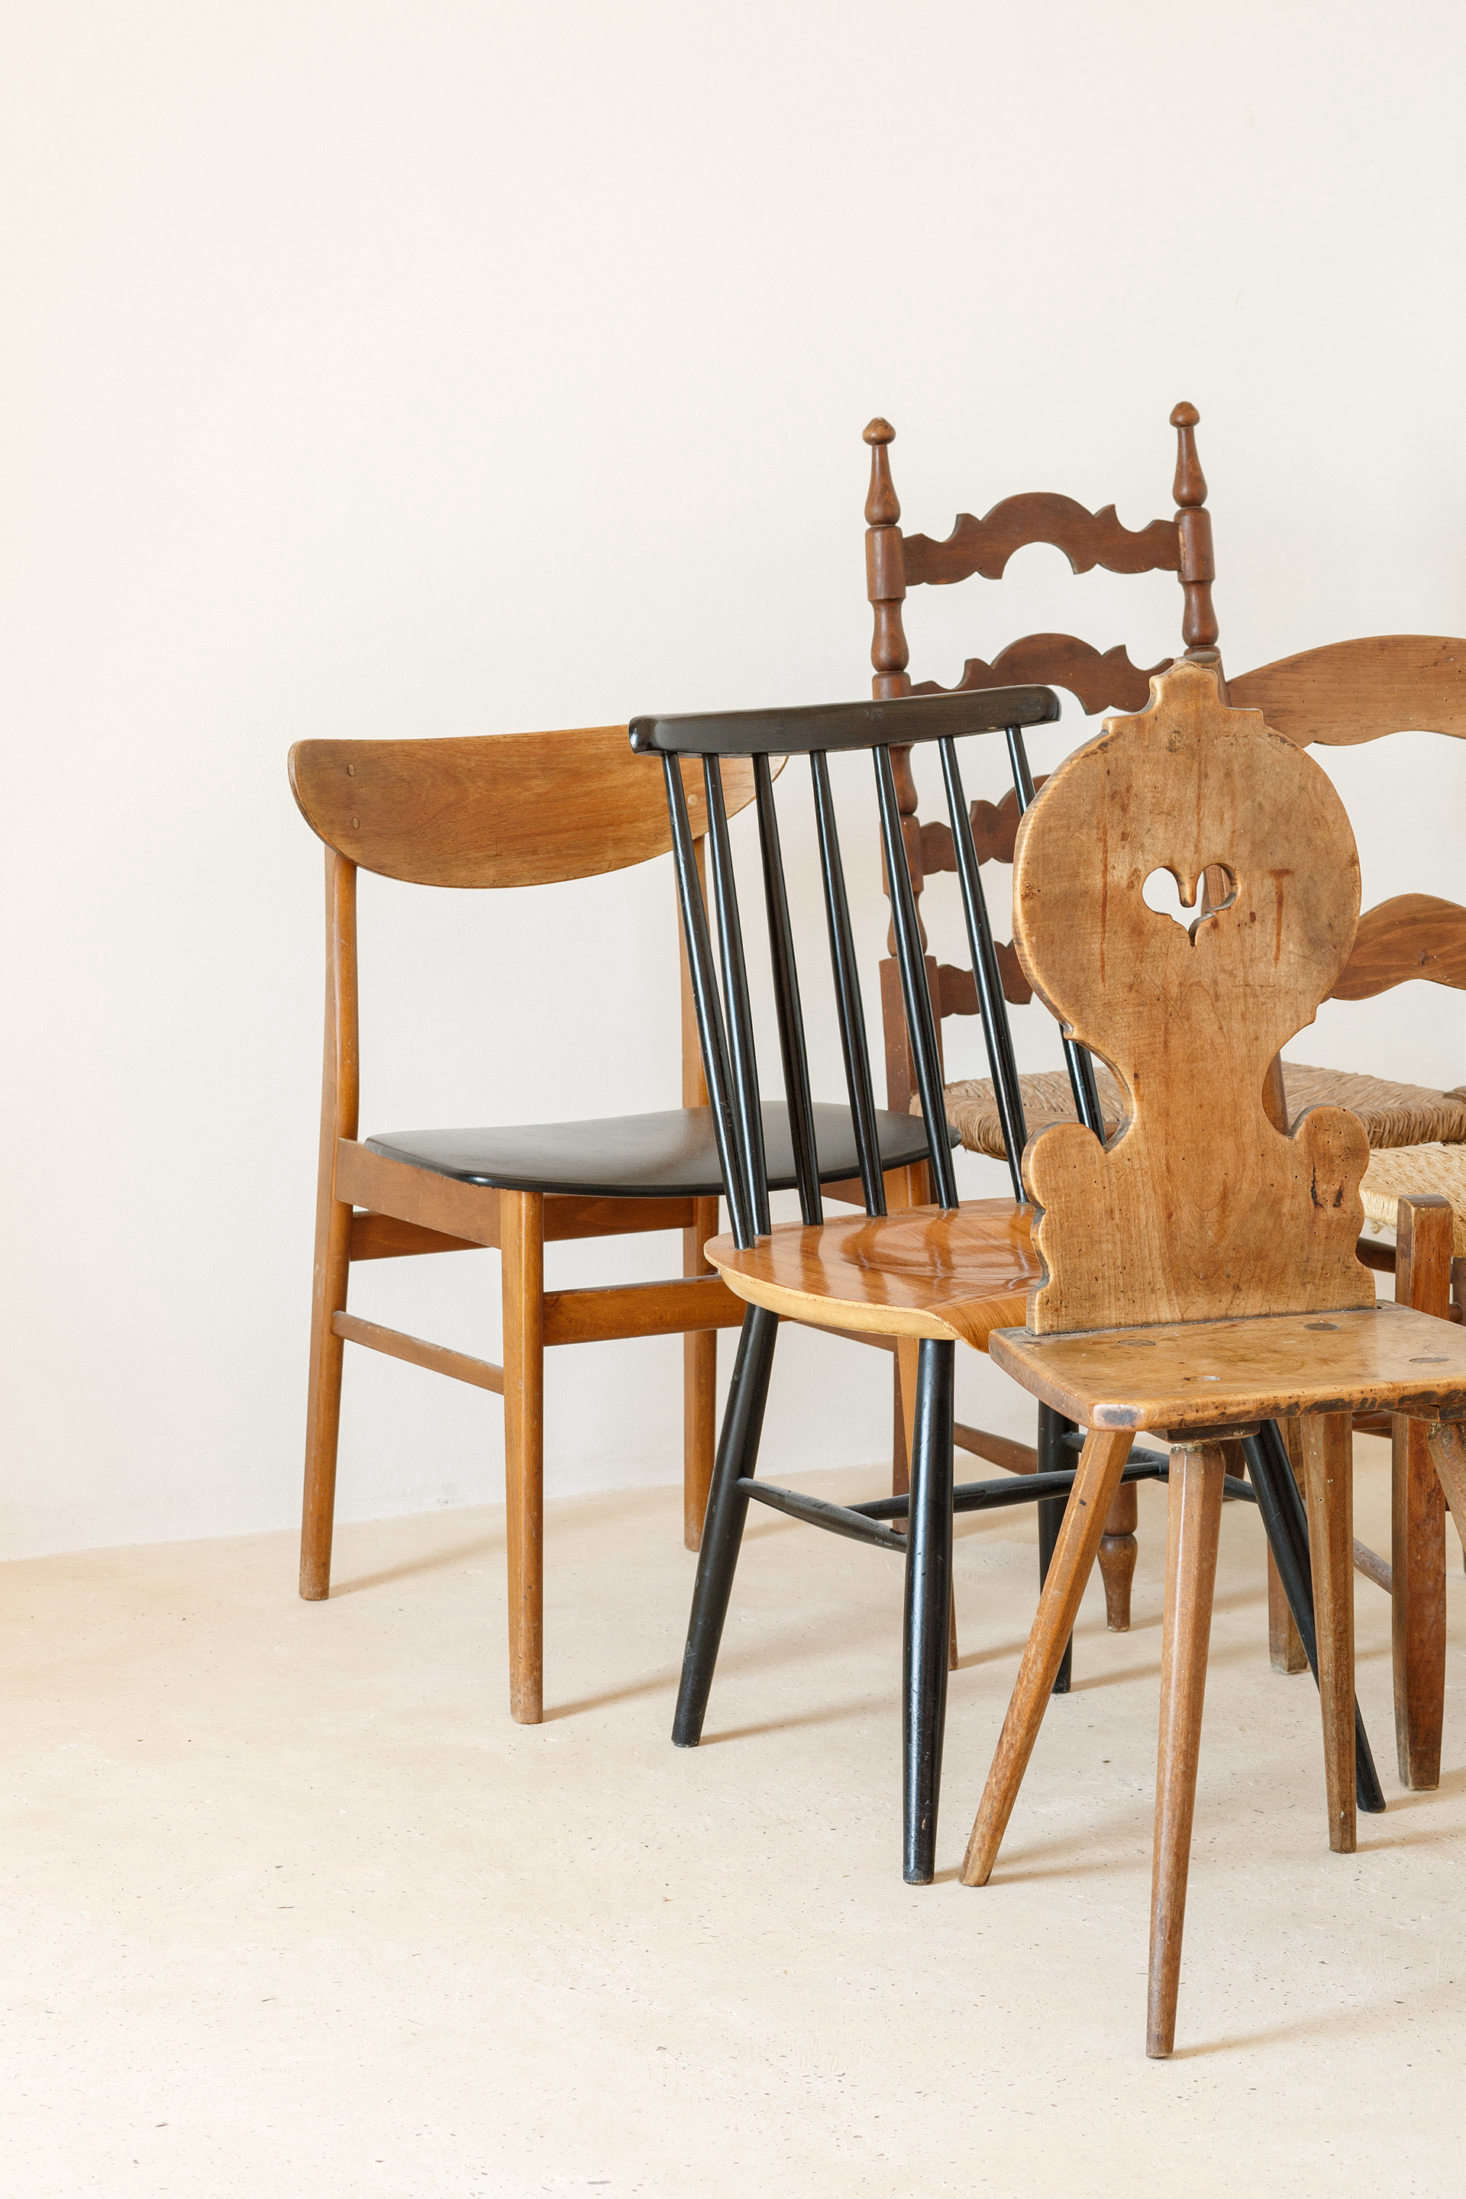 The chairs throughout the house are a mix of styles: &#8